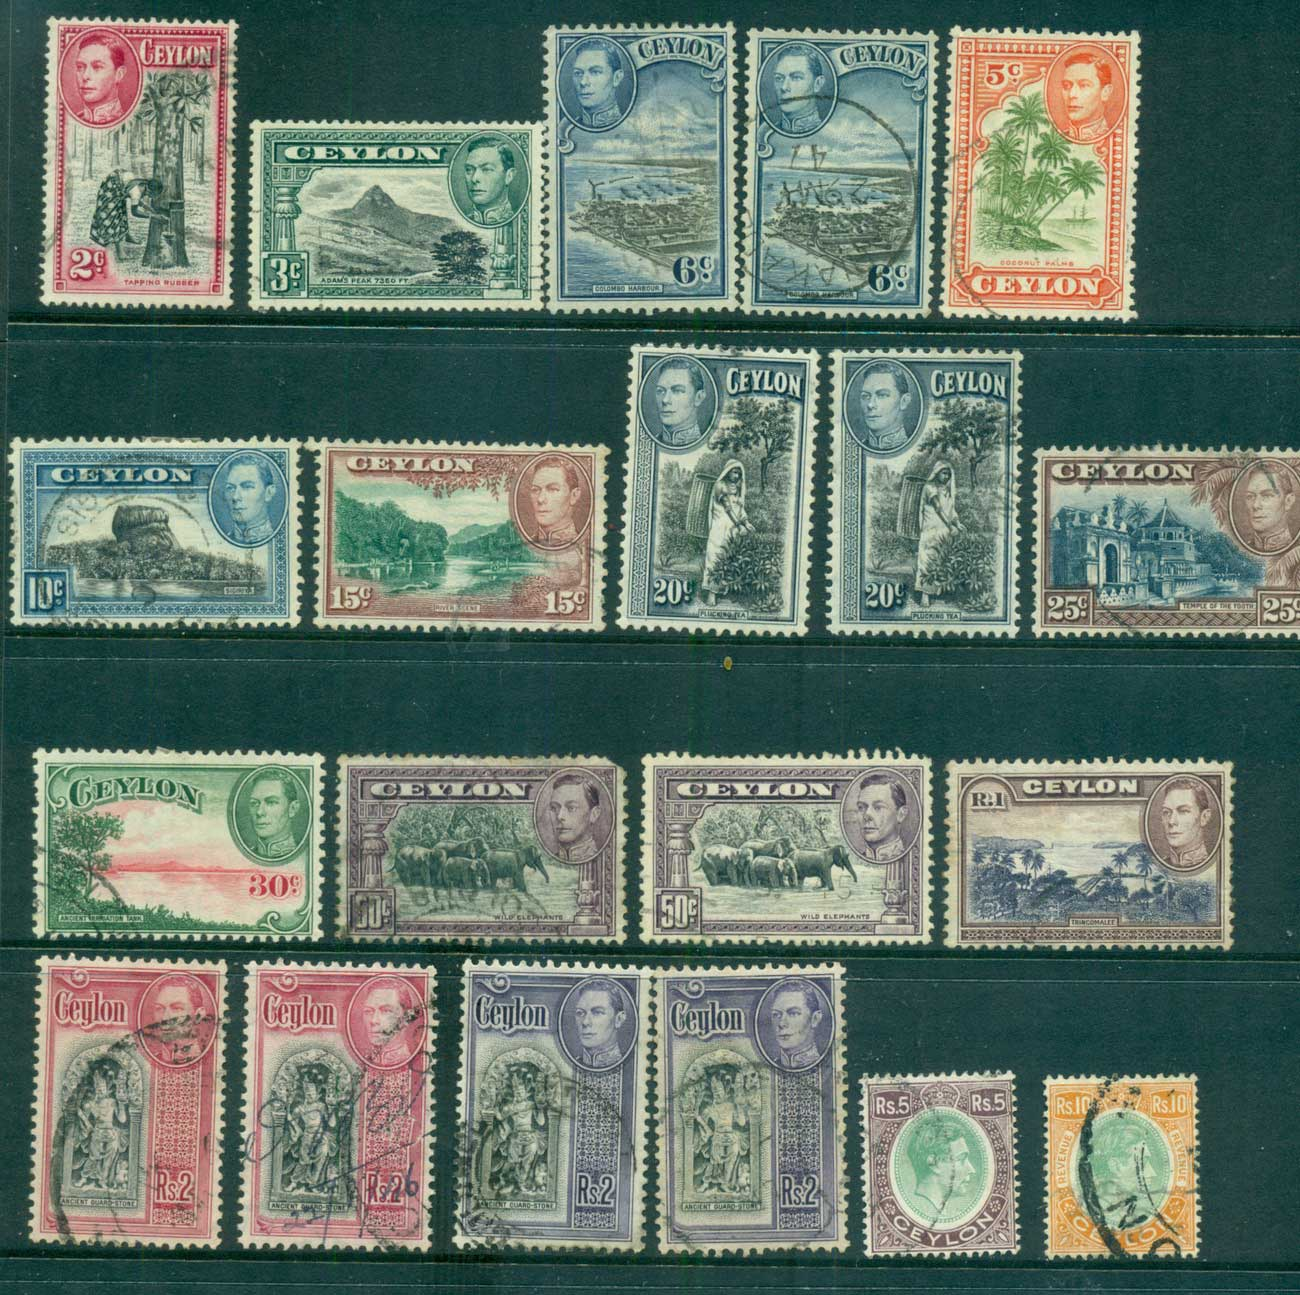 Ceylon 1938-52 KGVI Pictorials Asst, not perf checked, priced as cheapest, 10R telegraph Puncture FU lot68209